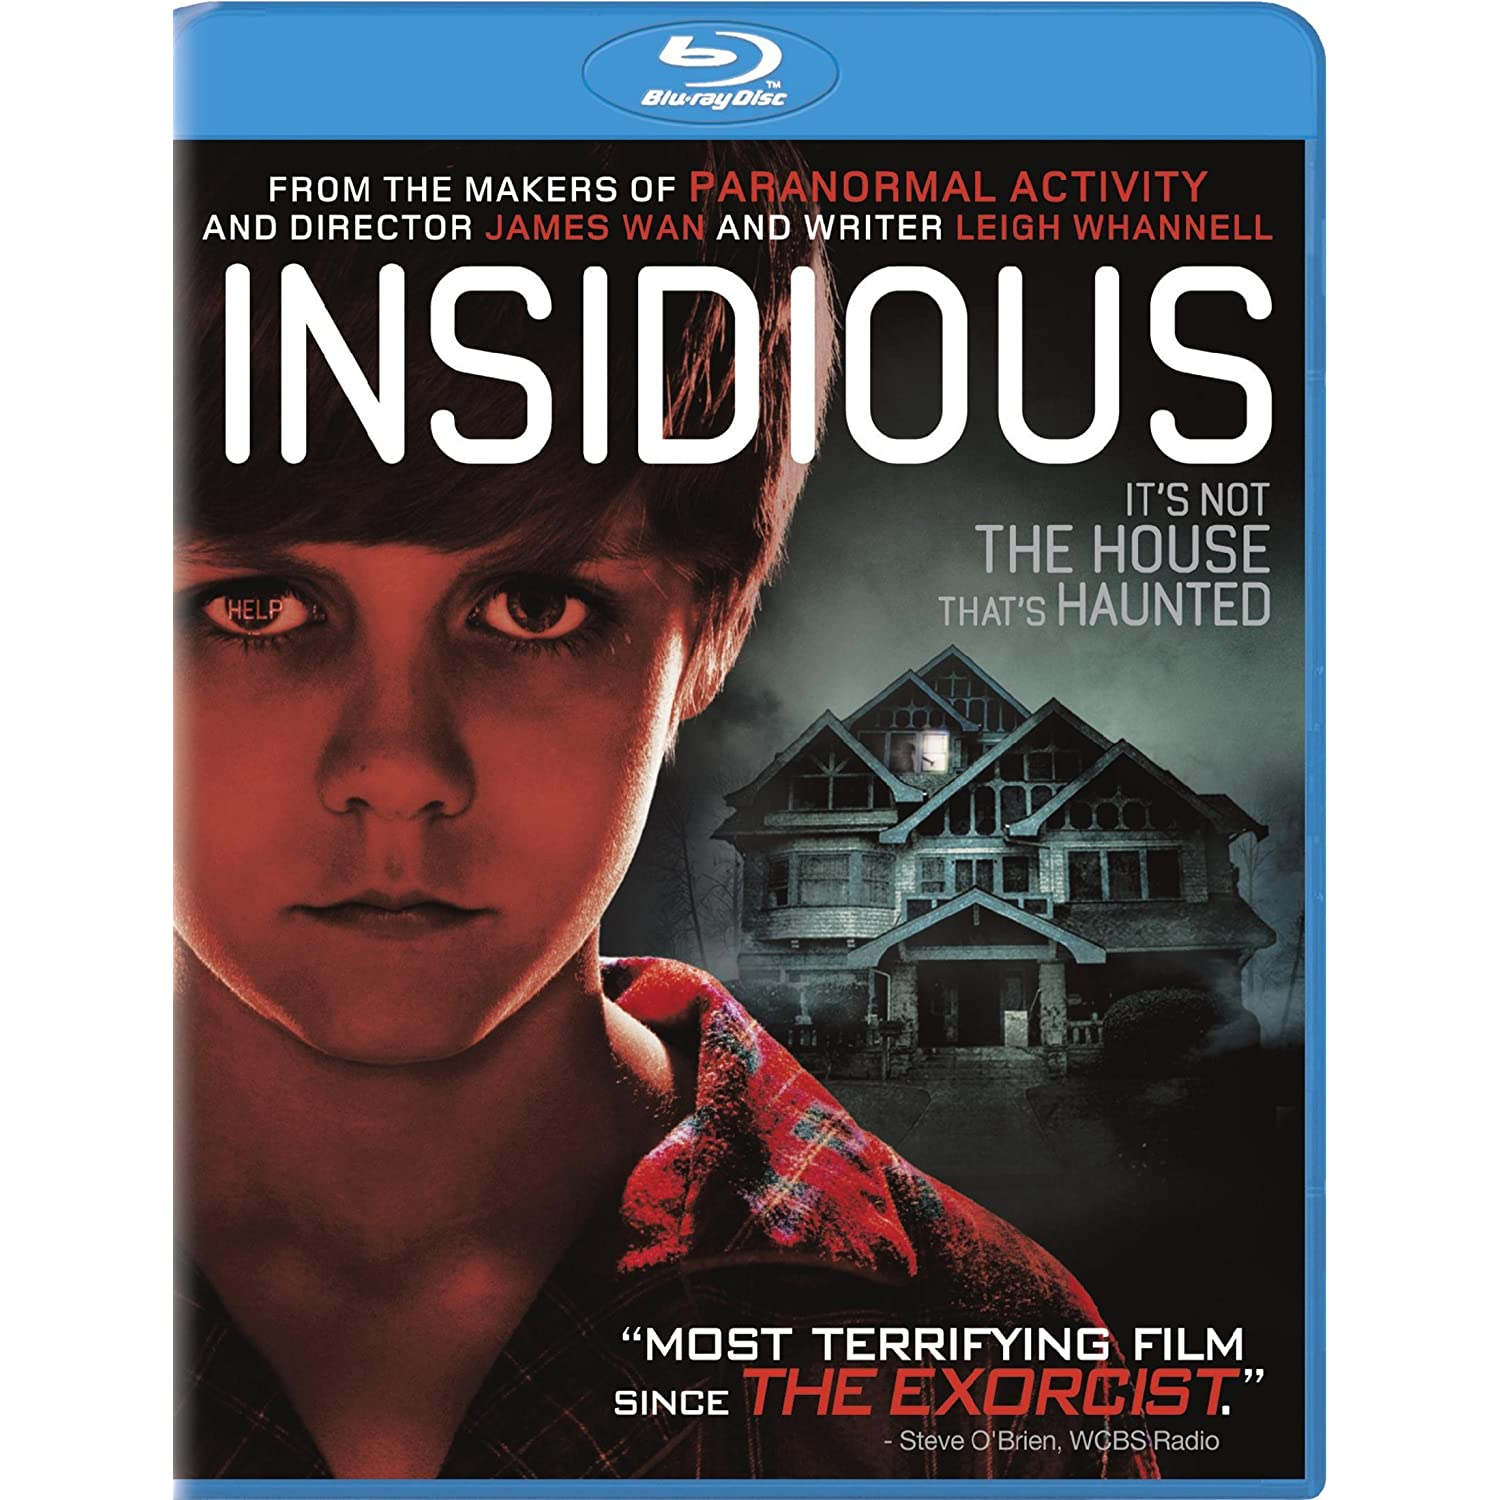 Insidious 1080p Mkv 2010 BluRay x264 DTS HDC